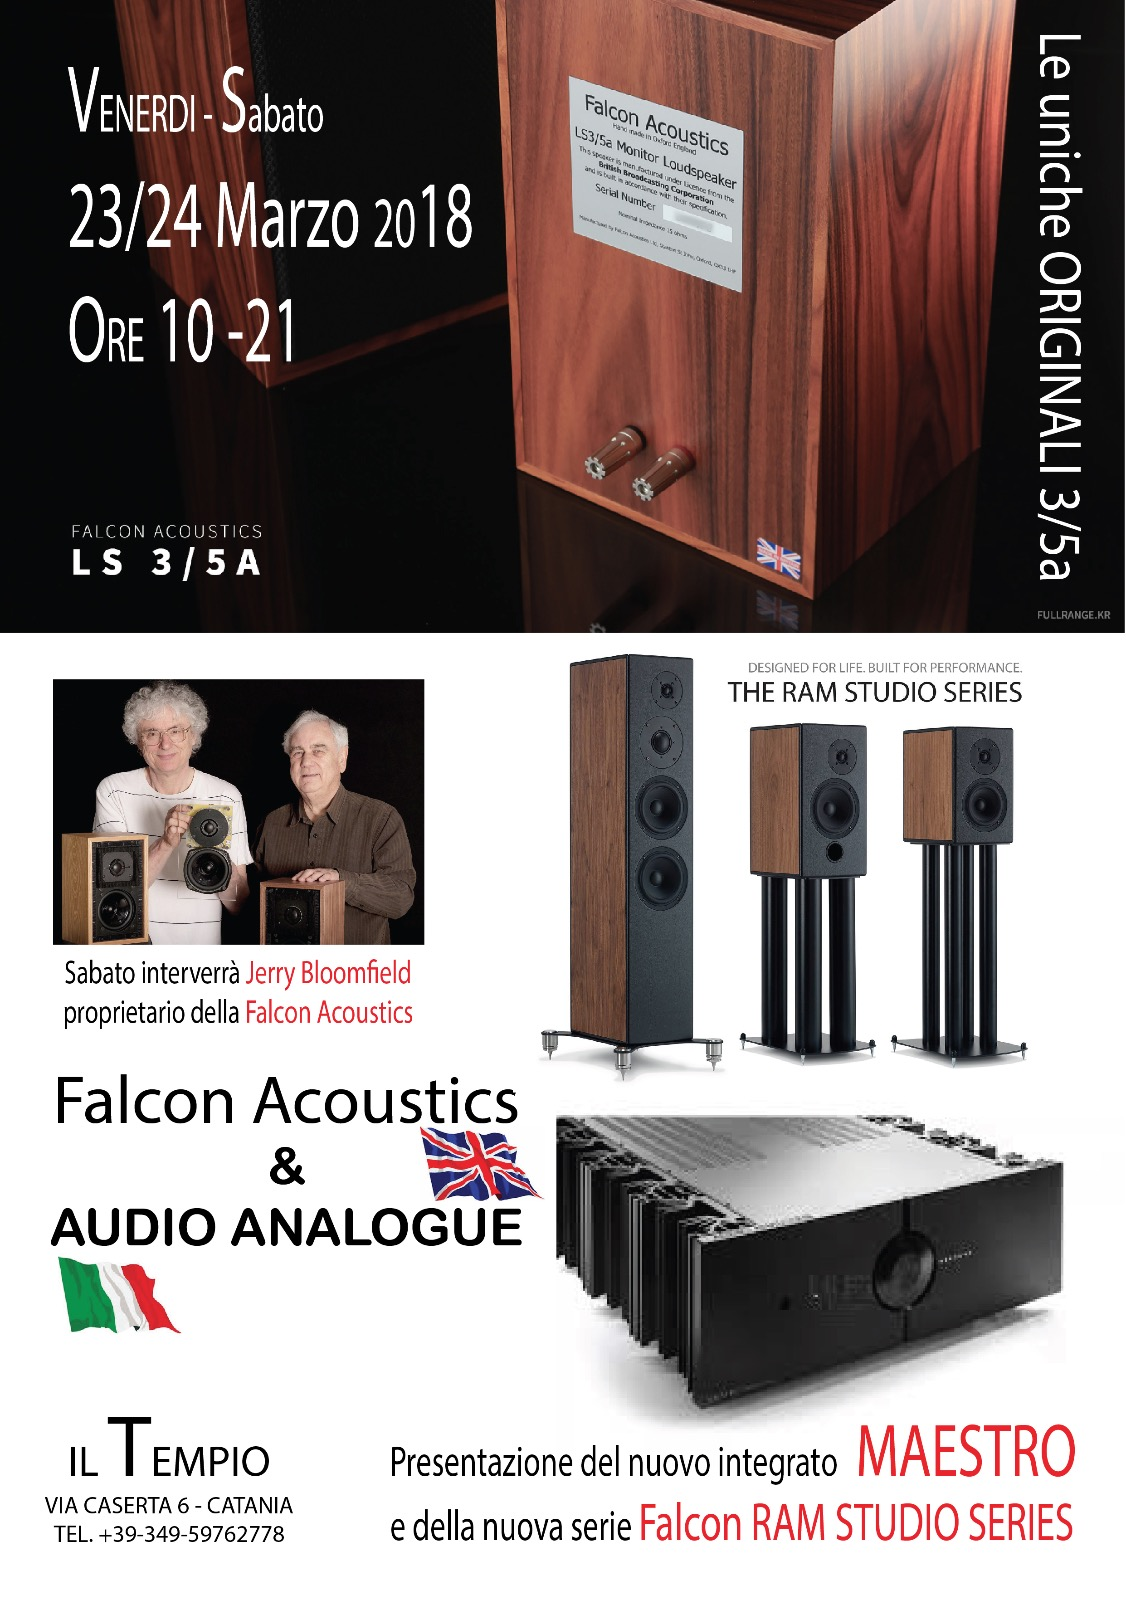 Demo Falcon Acoustics RAM e Audio Analogue Maestro